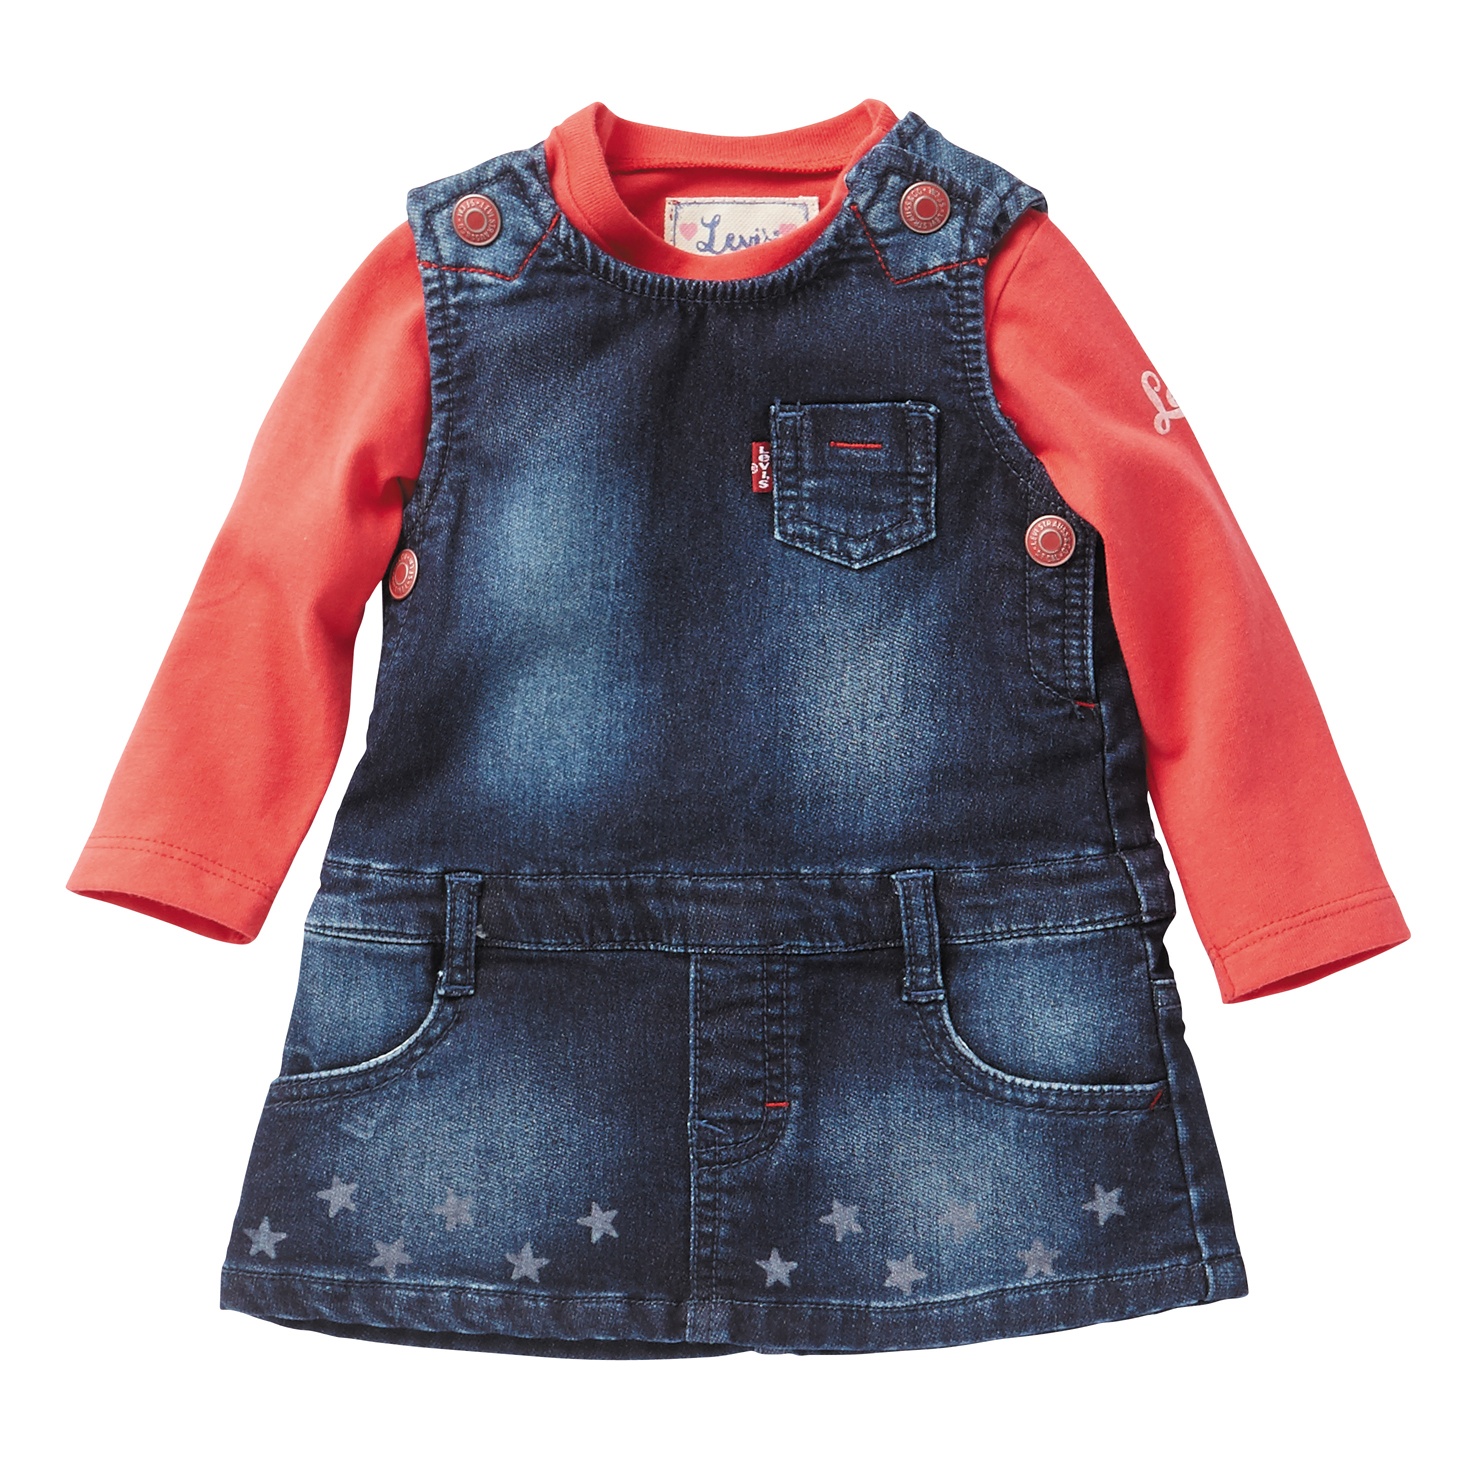 Levis Red top Baby Girls Pinafore Dress 1babyshop